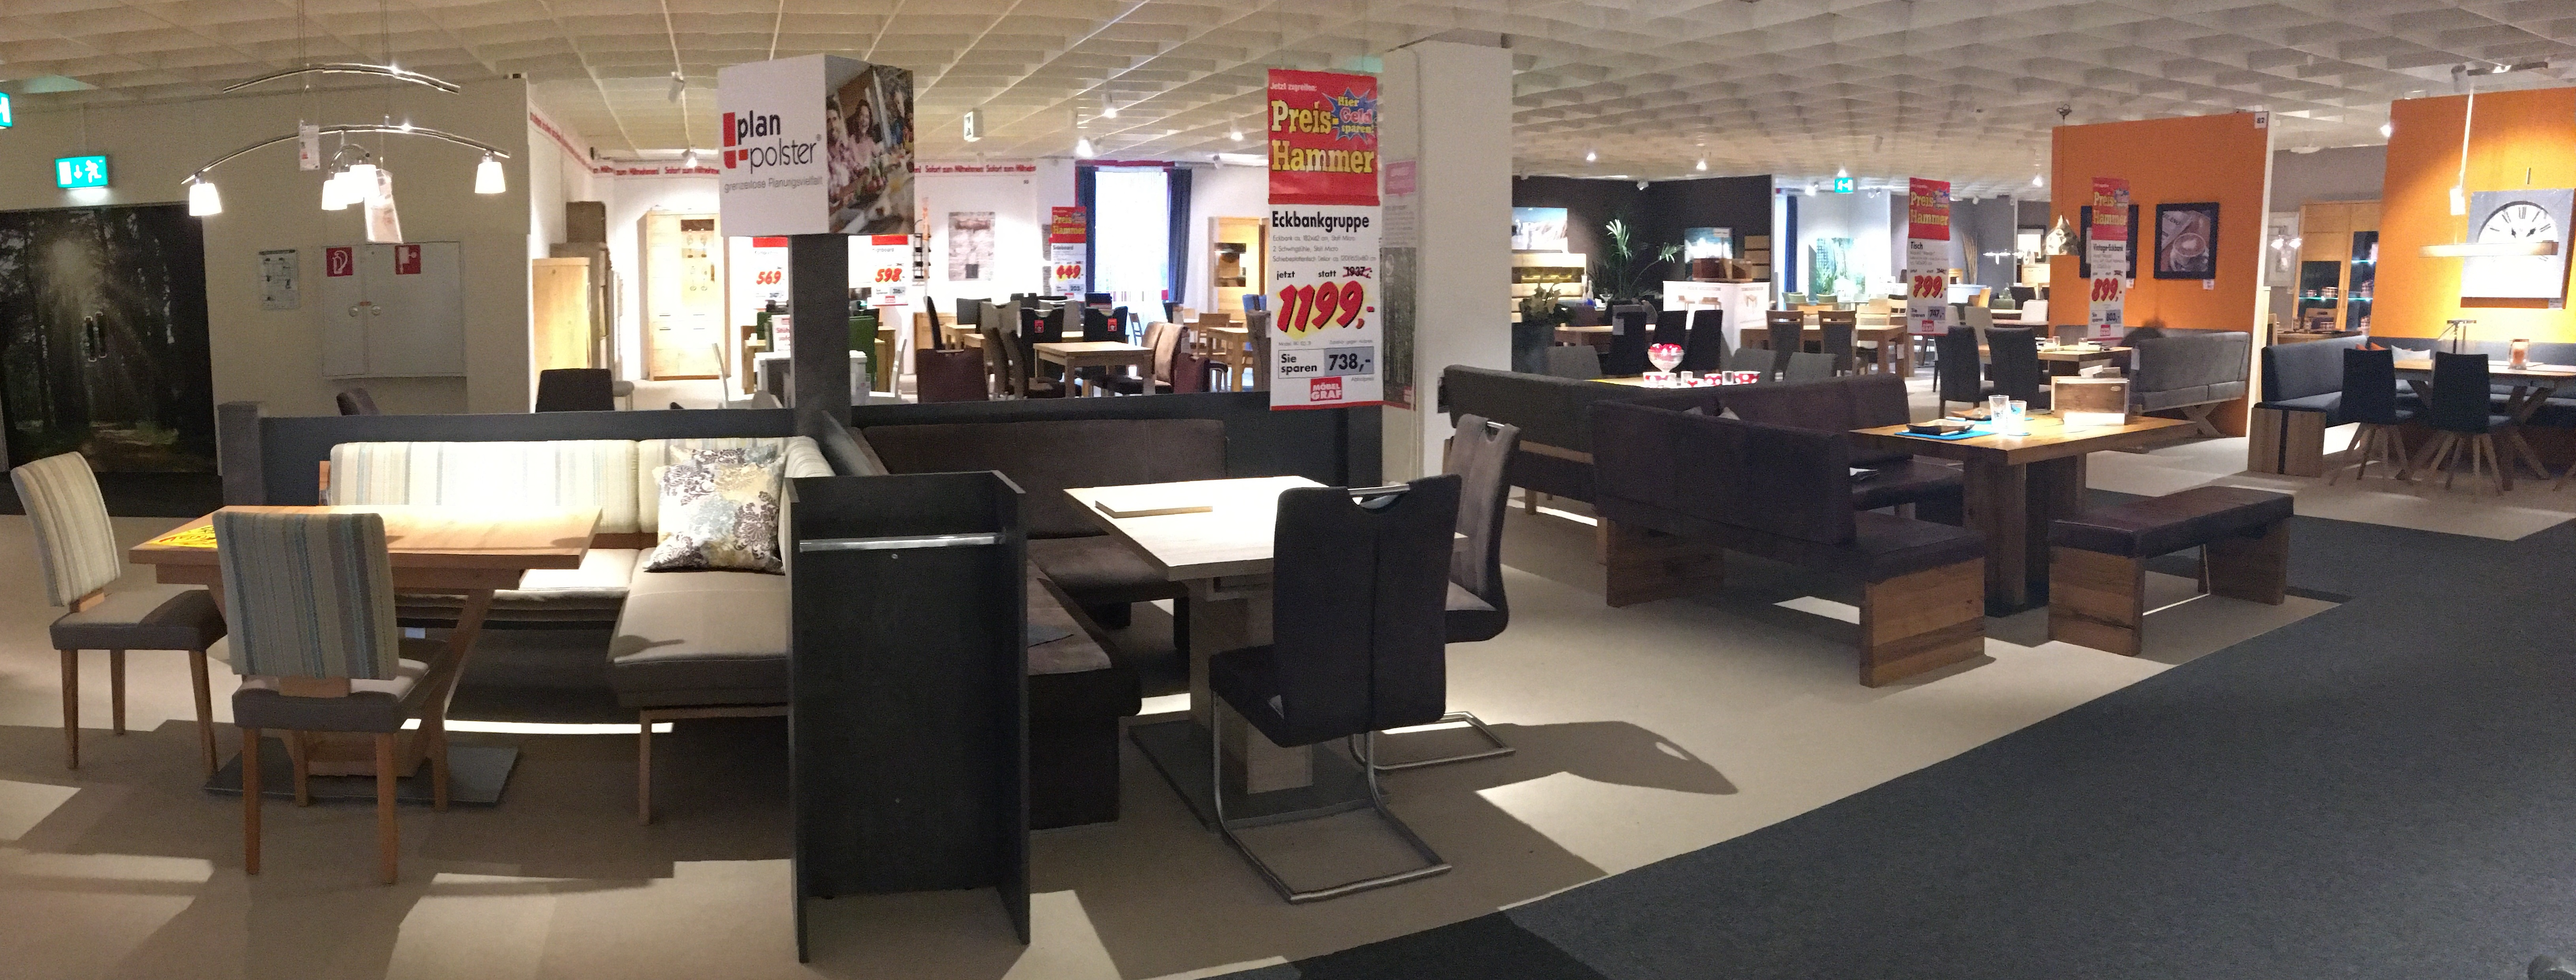 cafe ausstattung mbel best hochtische mit barhockern with cafe ausstattung mbel fabulous. Black Bedroom Furniture Sets. Home Design Ideas